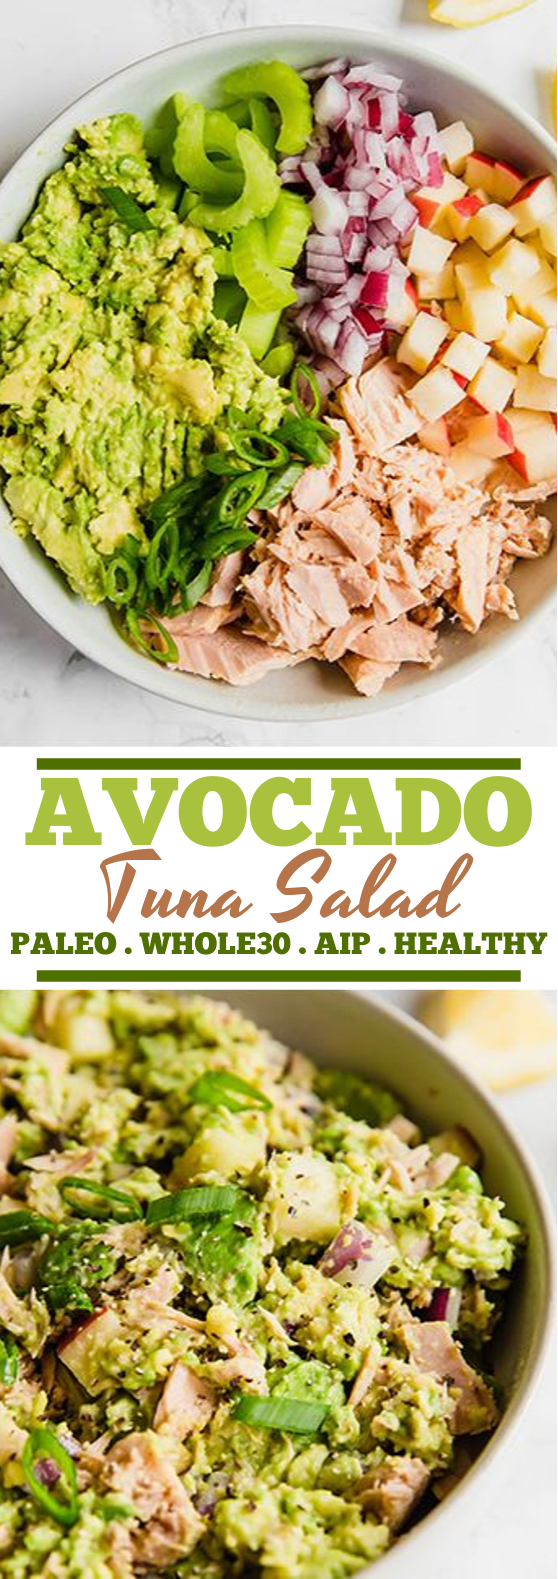 Avocado Tuna Salad #healthy #salad